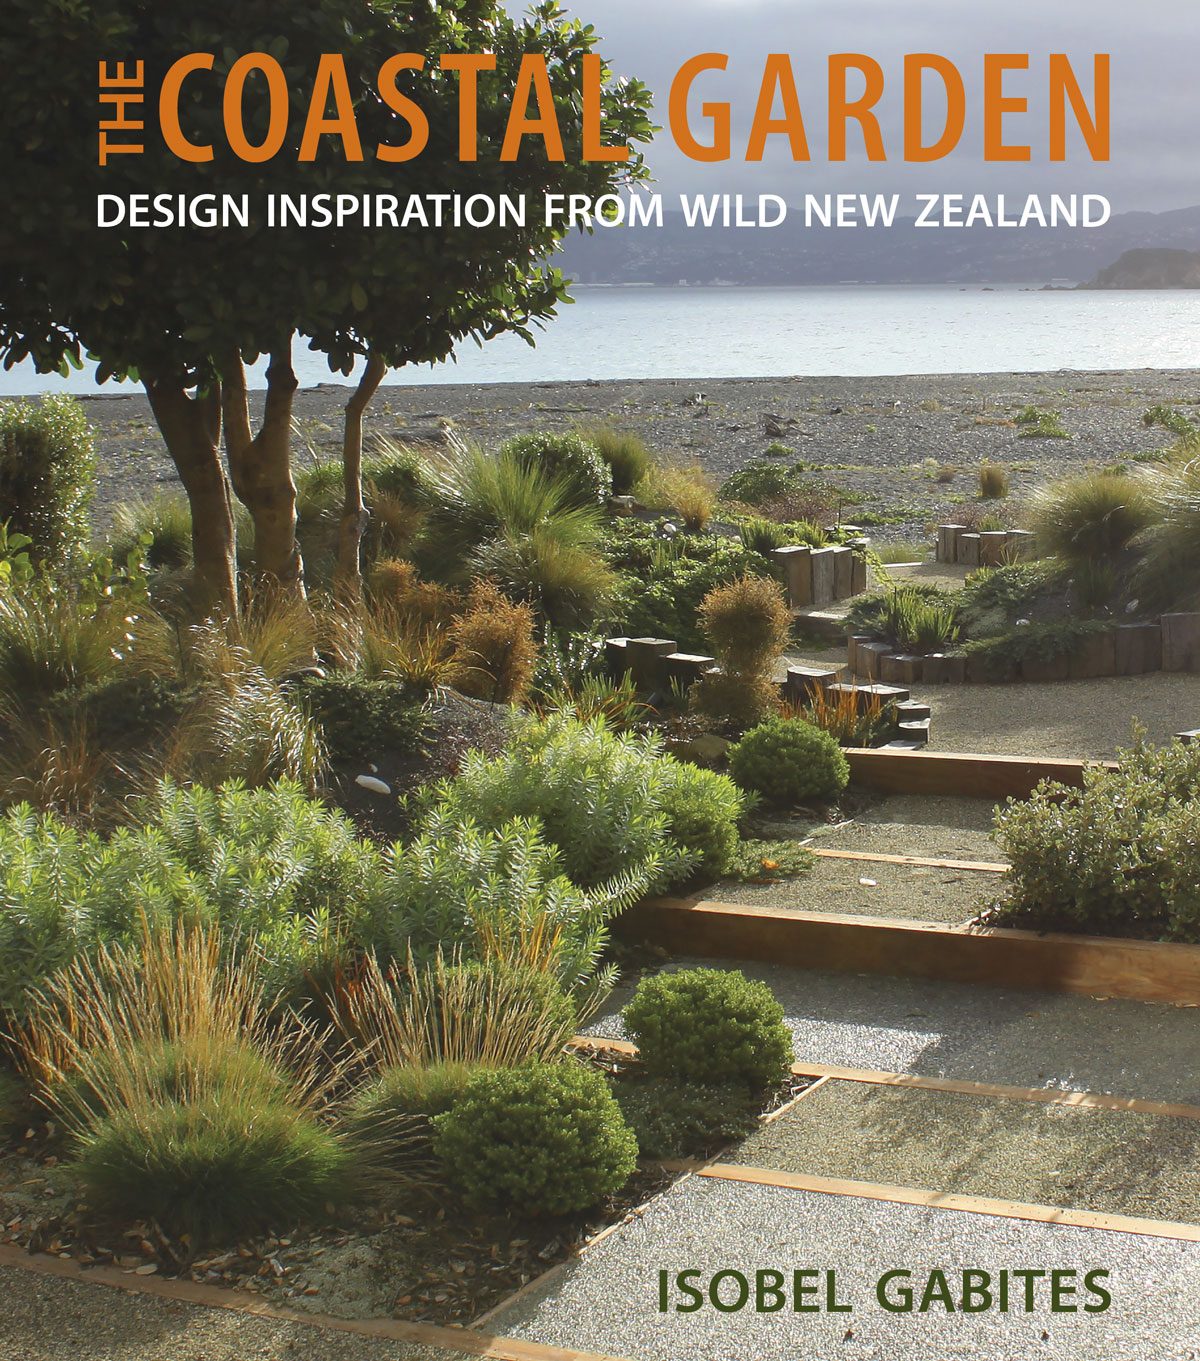 Coastal Garden Design design phillip withers beach gardens designs surprising inspiration 1 county landscapes Download High Res Cover